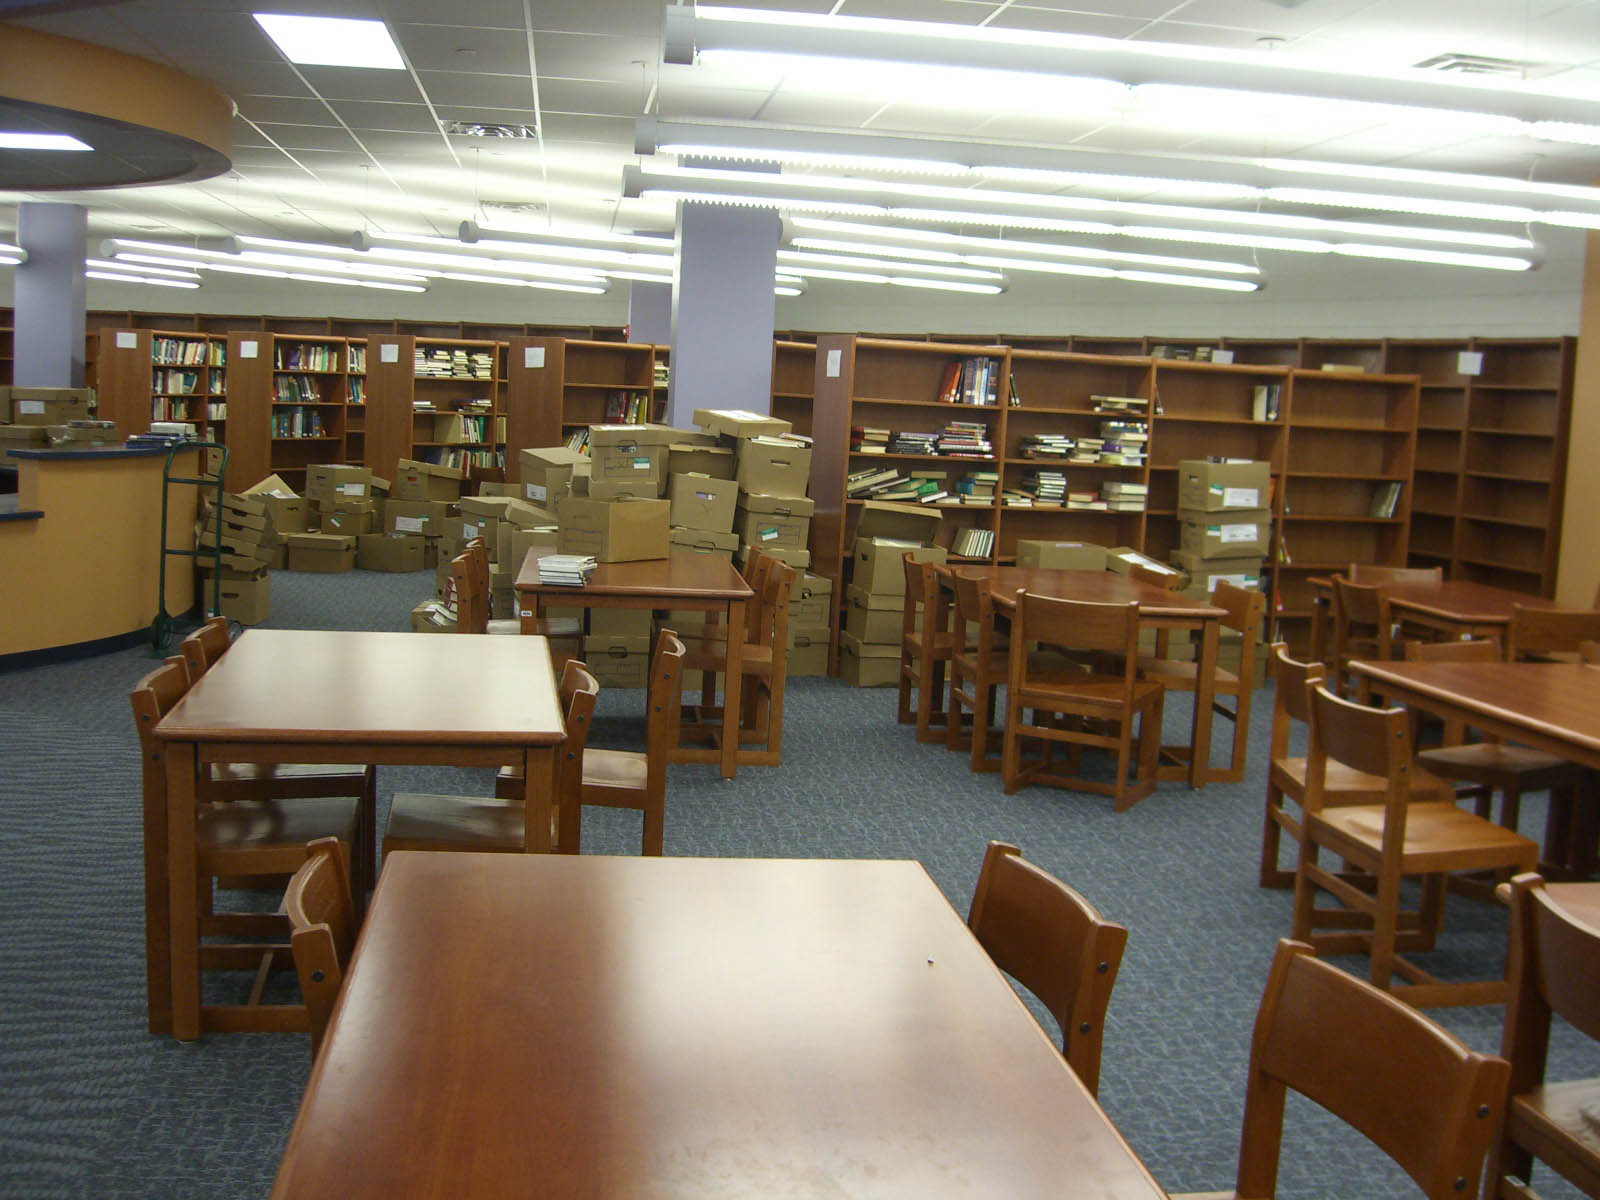 Wood Library Tables and Seating. Longo Schools   Blog Archive   Wood Library Tables and Seating